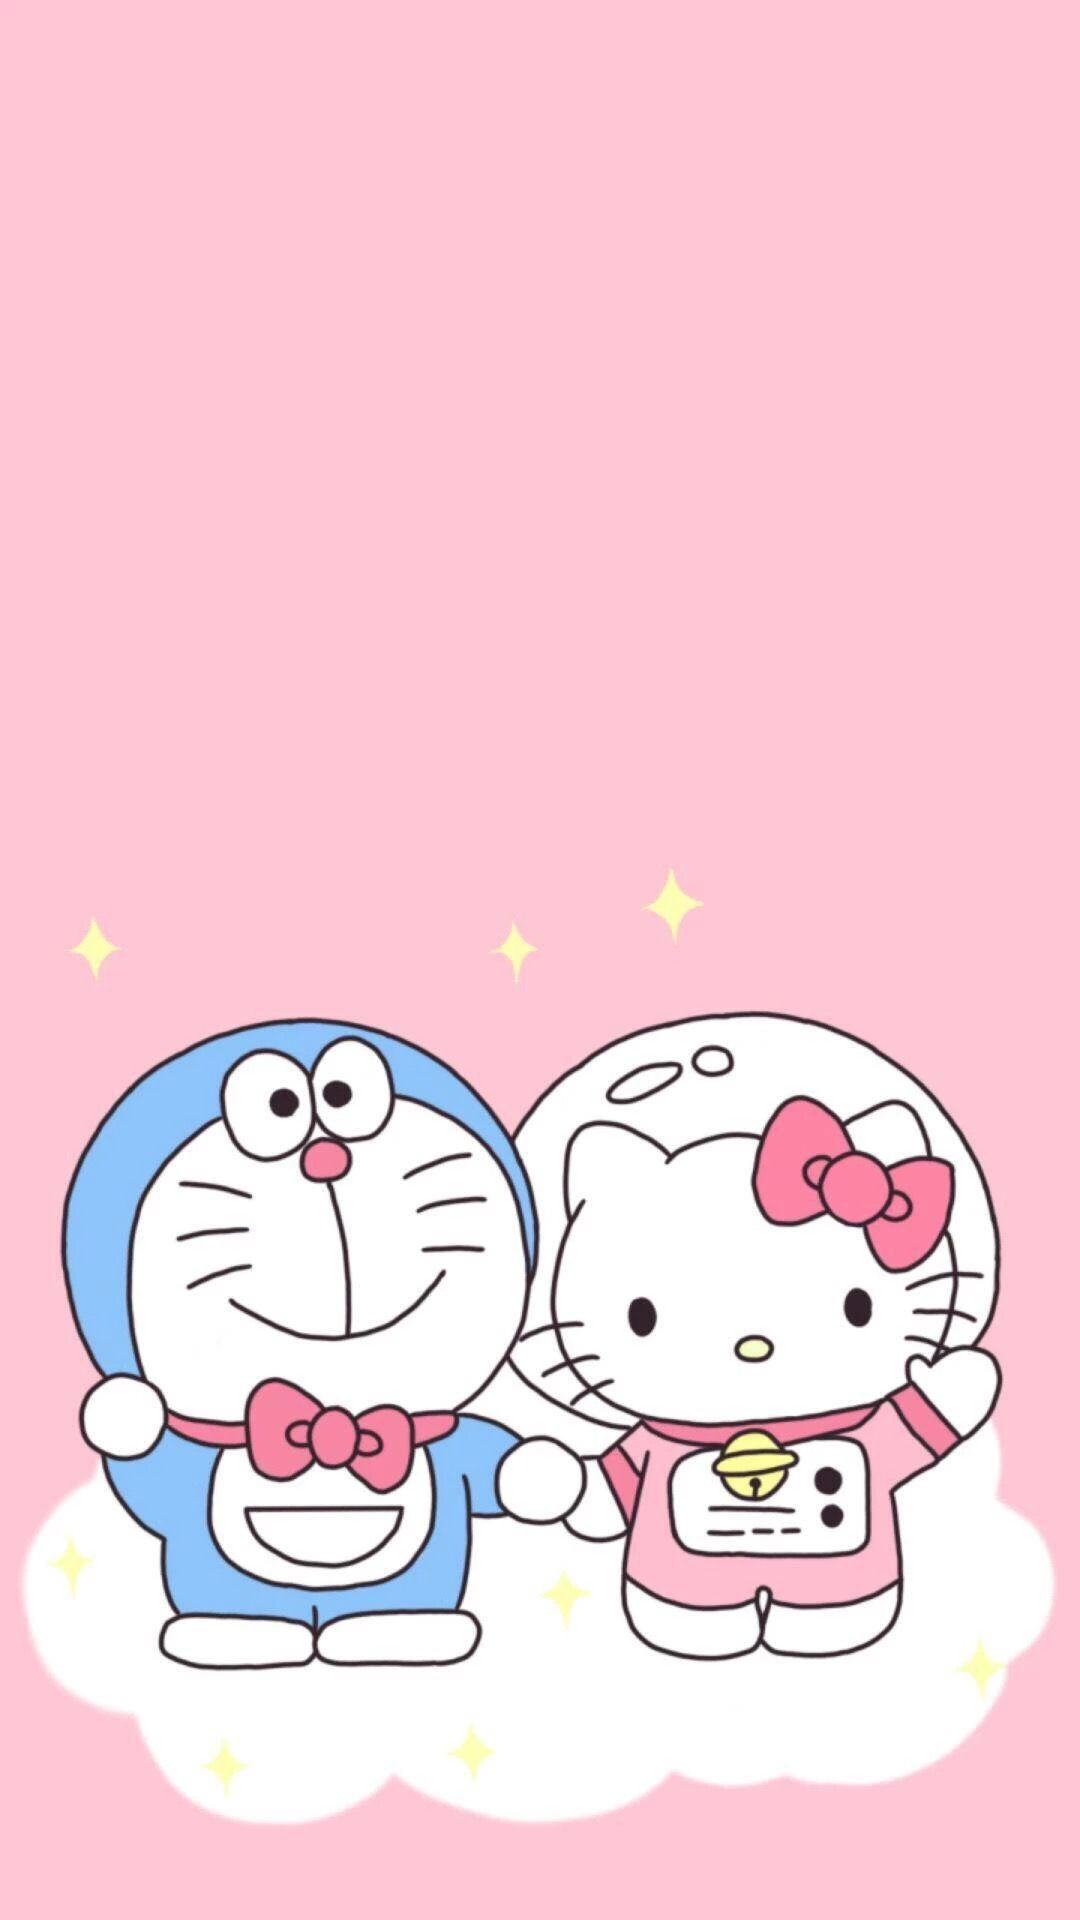 Download 95+ Gambar Hello Kitty Dan Doraemon Lucu Paling Bagus Gratis